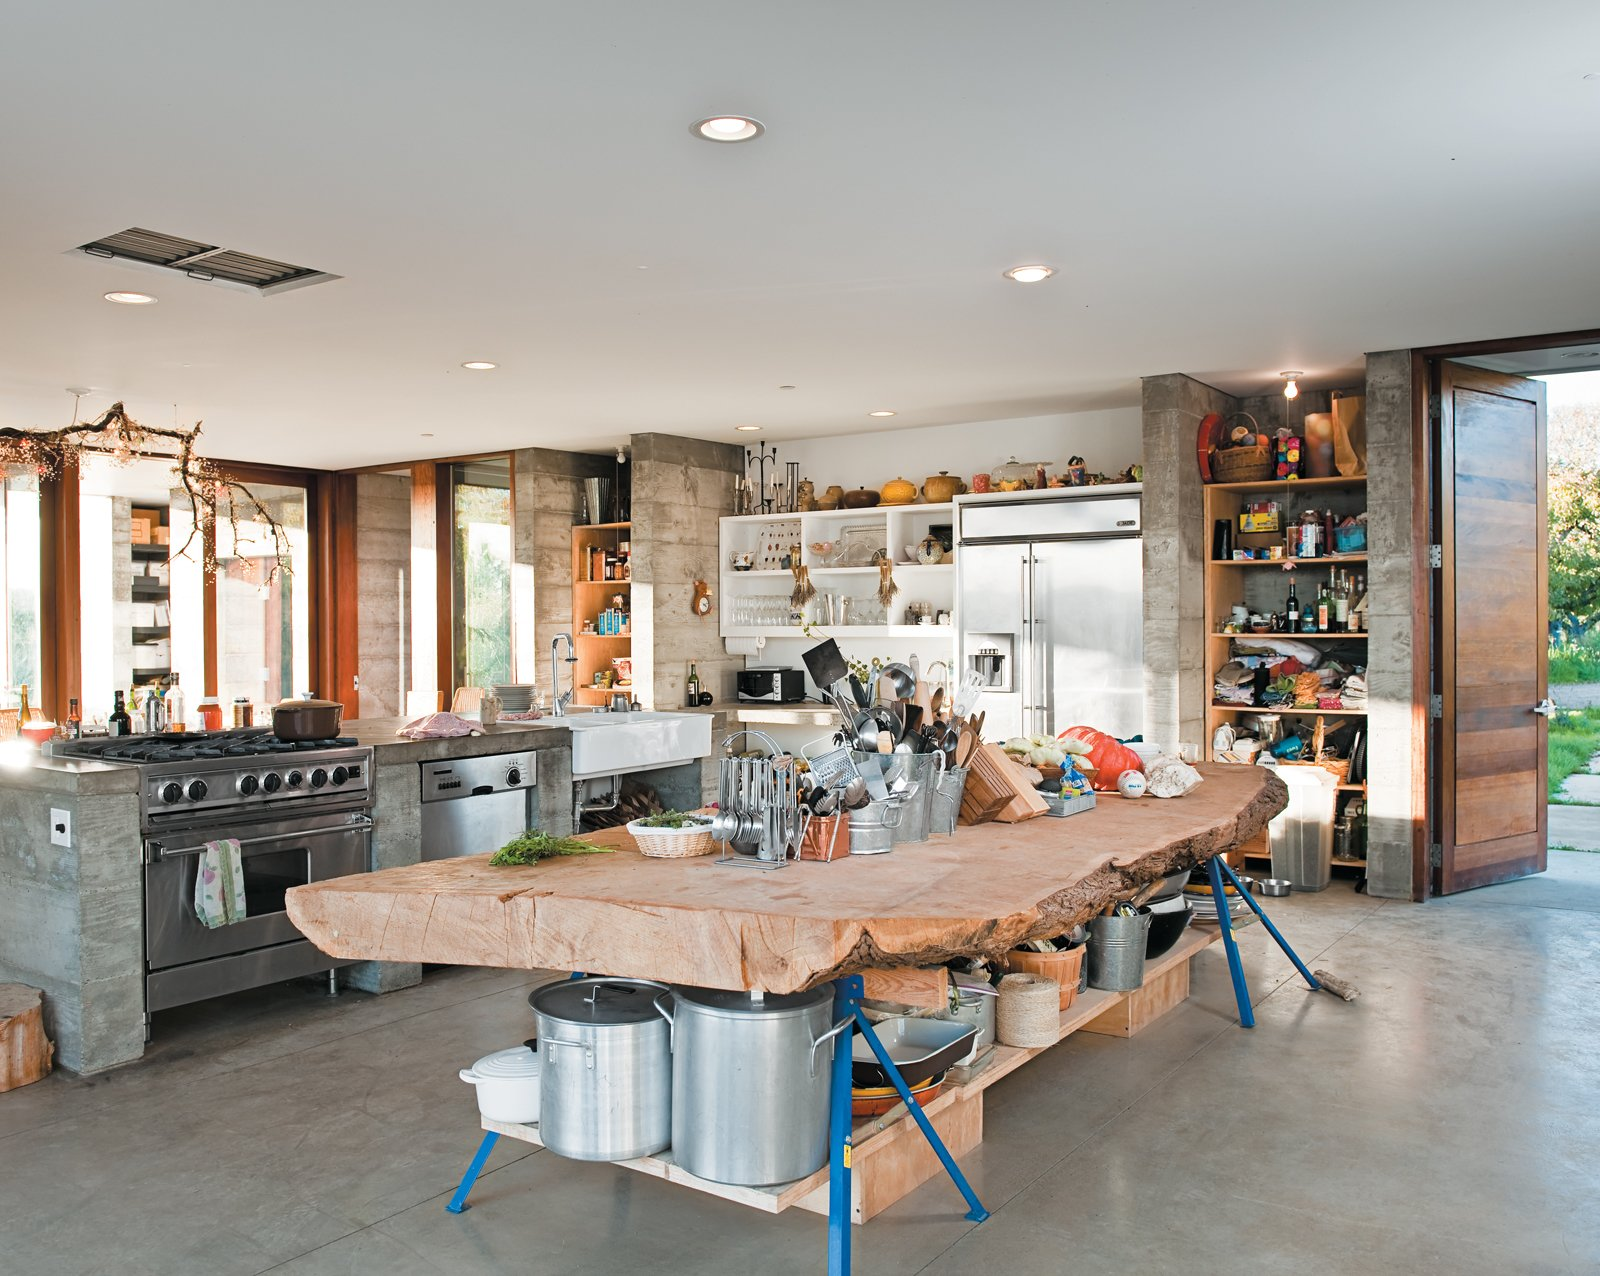 A massive slab of cypress perched atop sawhorses provides storage for pots and utensils. Tagged: Kitchen and Wood Counter.  Photo 5 of 18 in A Sonoma Prefab That Celebrates a Family's Passion for Cooking